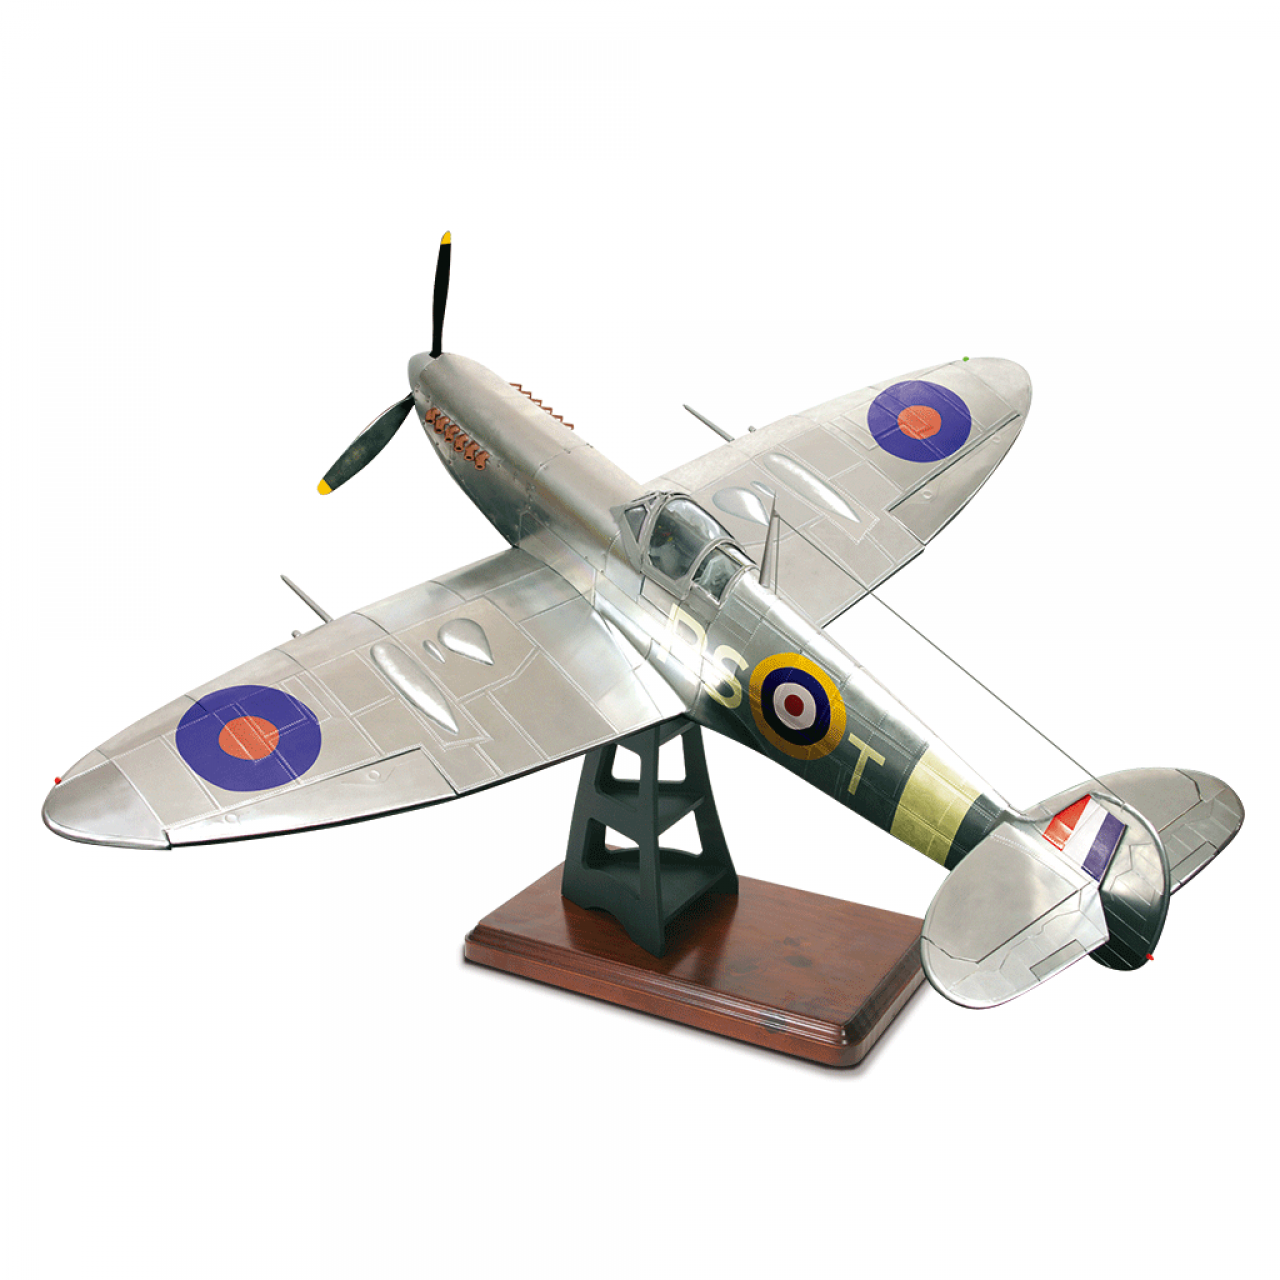 rc model plane kits with Build Spitfire Full Kit on Rc Plans And Models also Hangar Dhc2 Beaver 30cc Arf P 6031 further Build The Spitfire additionally Ts 73 Tamiya Acrylic Spray Paint Clear Orange furthermore gettingstartedinrc.